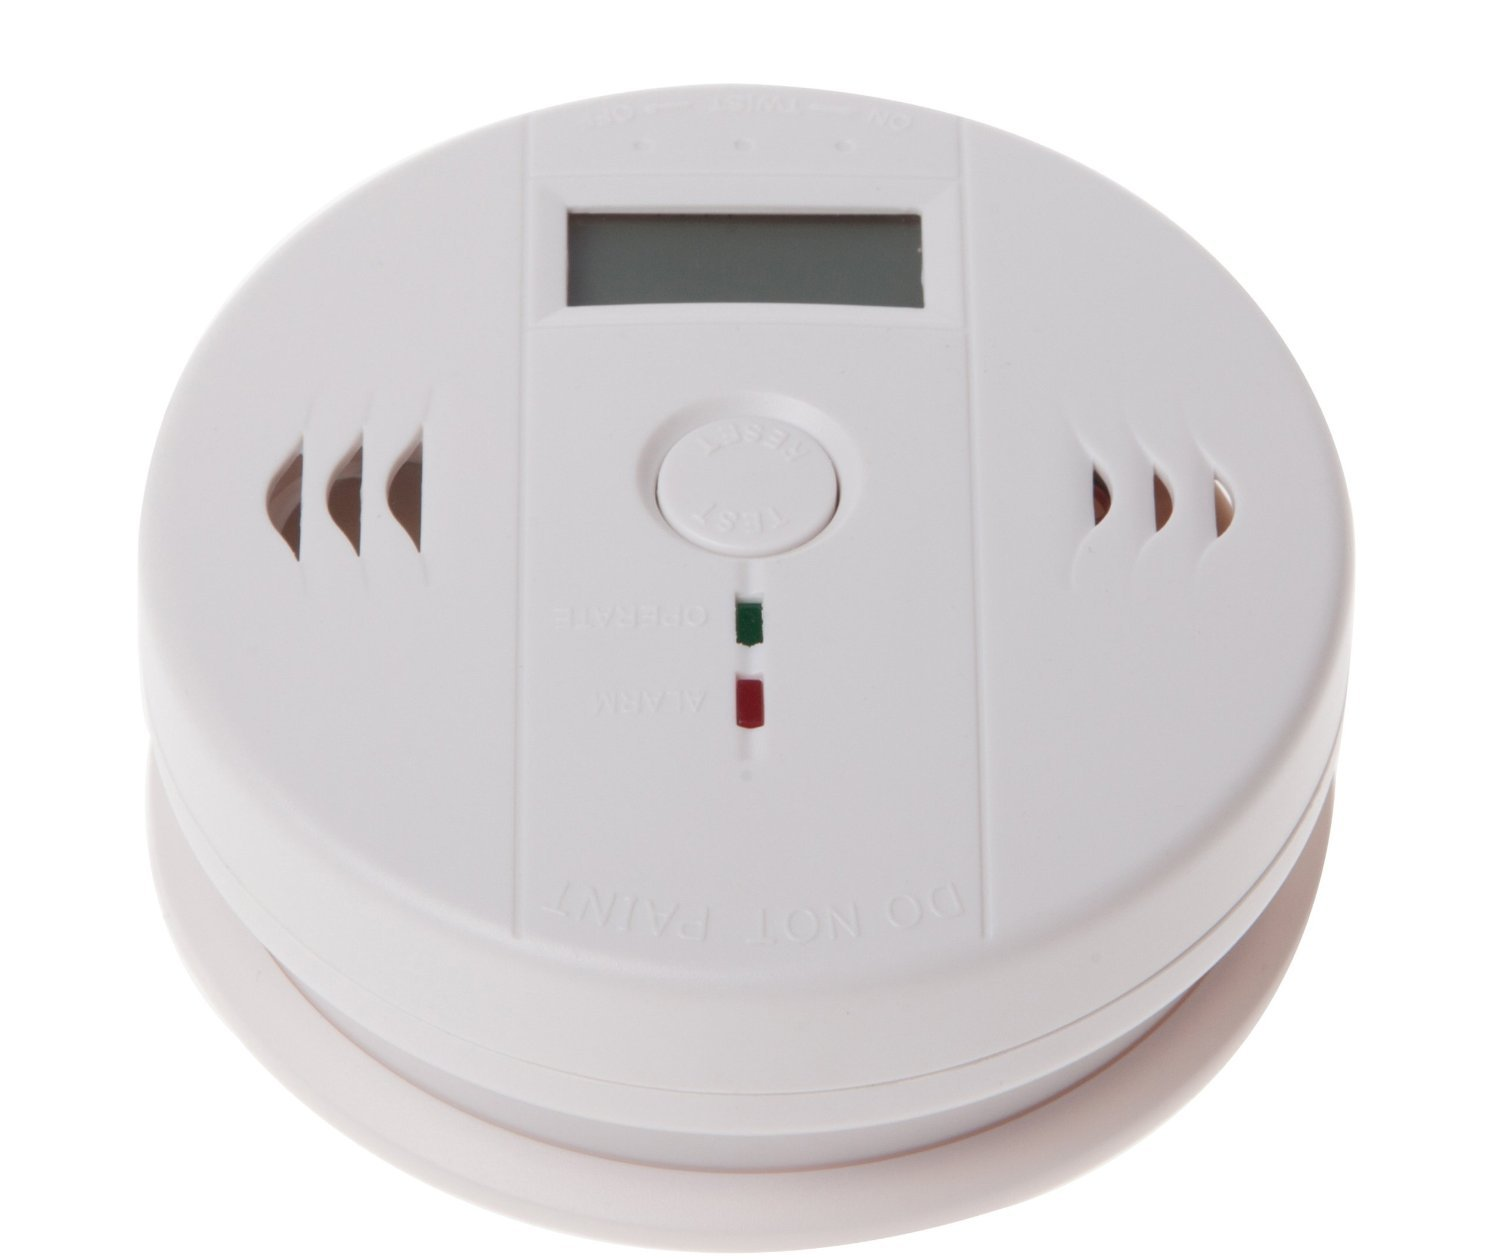 50 Best Carbon Monoxide Detectors Reviews Prices More Low Cost Burglar Alarm For Boats